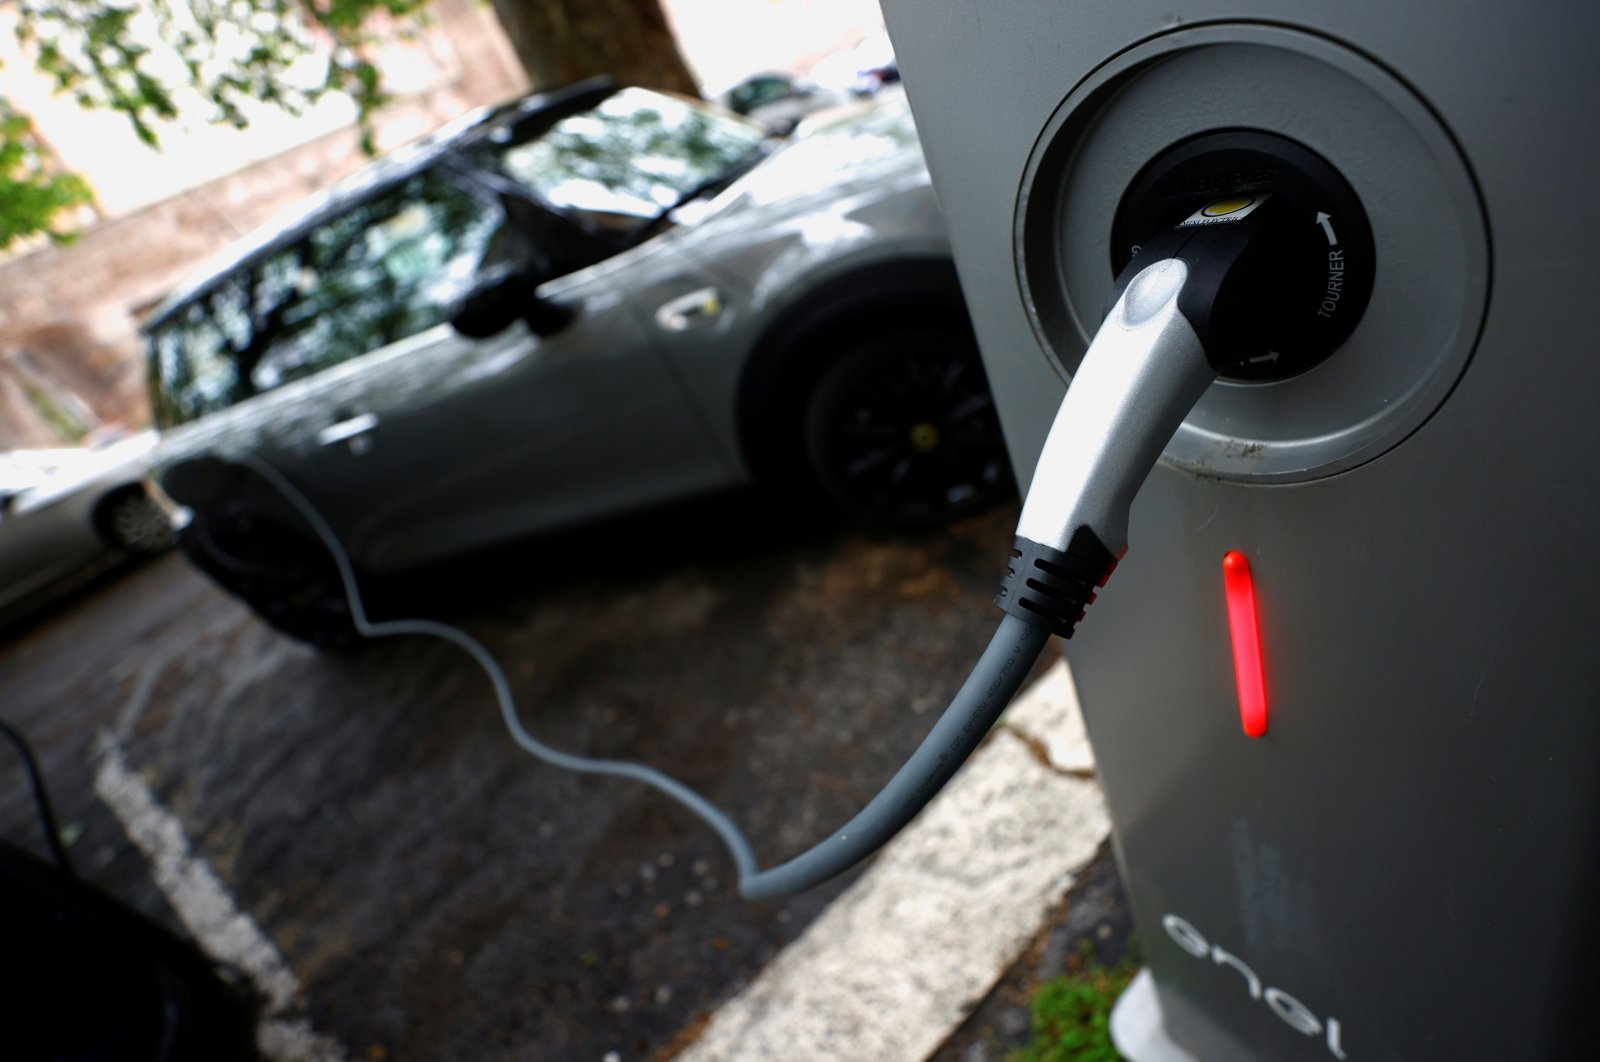 An electric car is seen plugged in at a charging point for electric vehicles in Rome, Italy, April 28, 2021. (Reuters Photo)